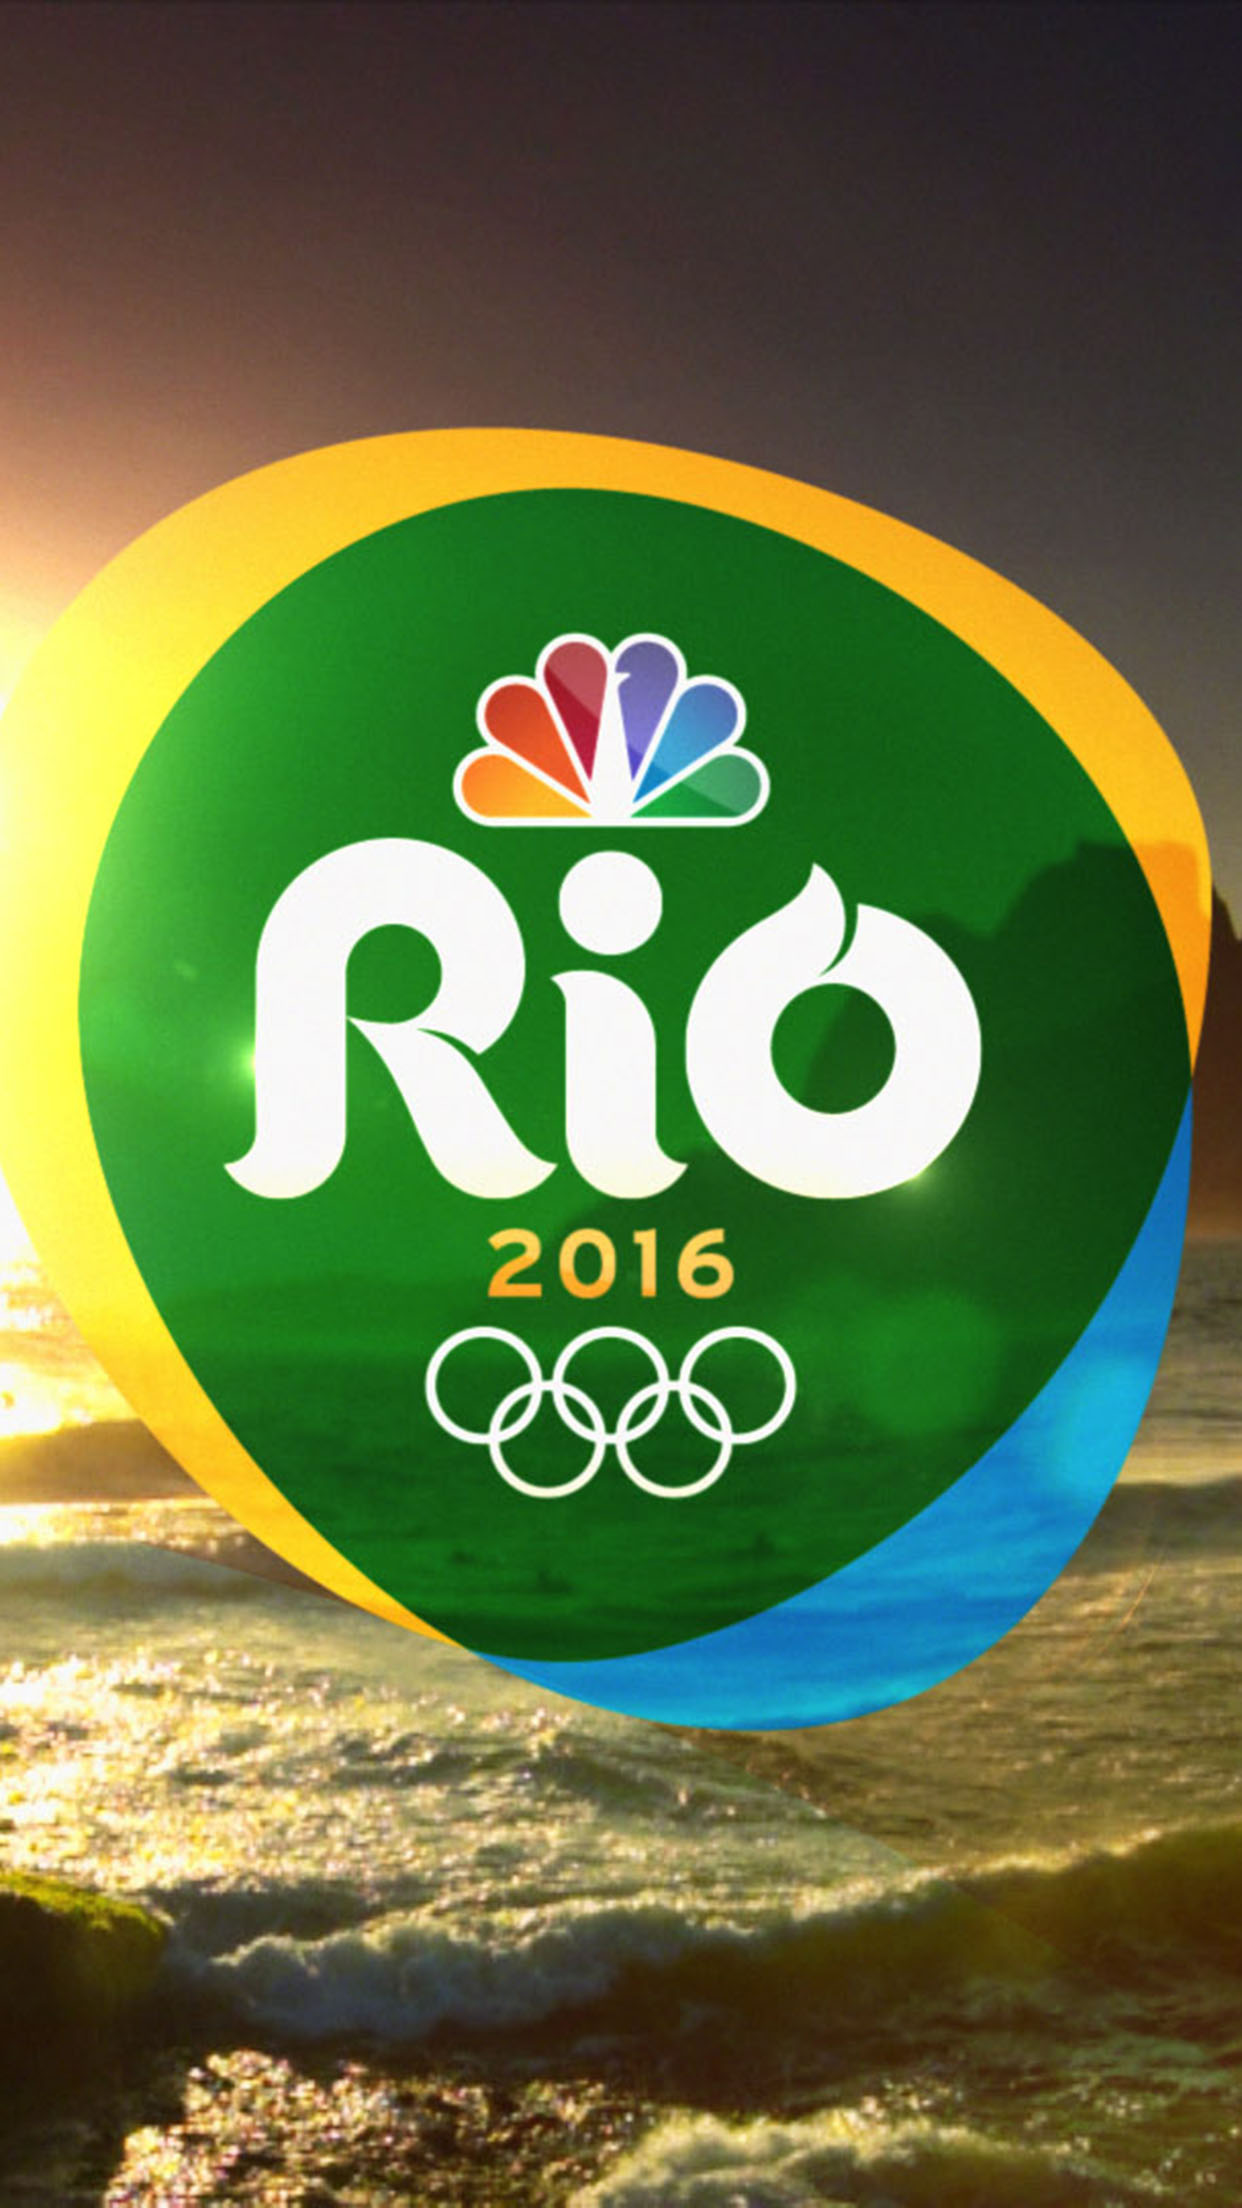 JO RIO 2016 LOGO 3Wallpapers iPhone Parallax JO Rio 2016 Logo